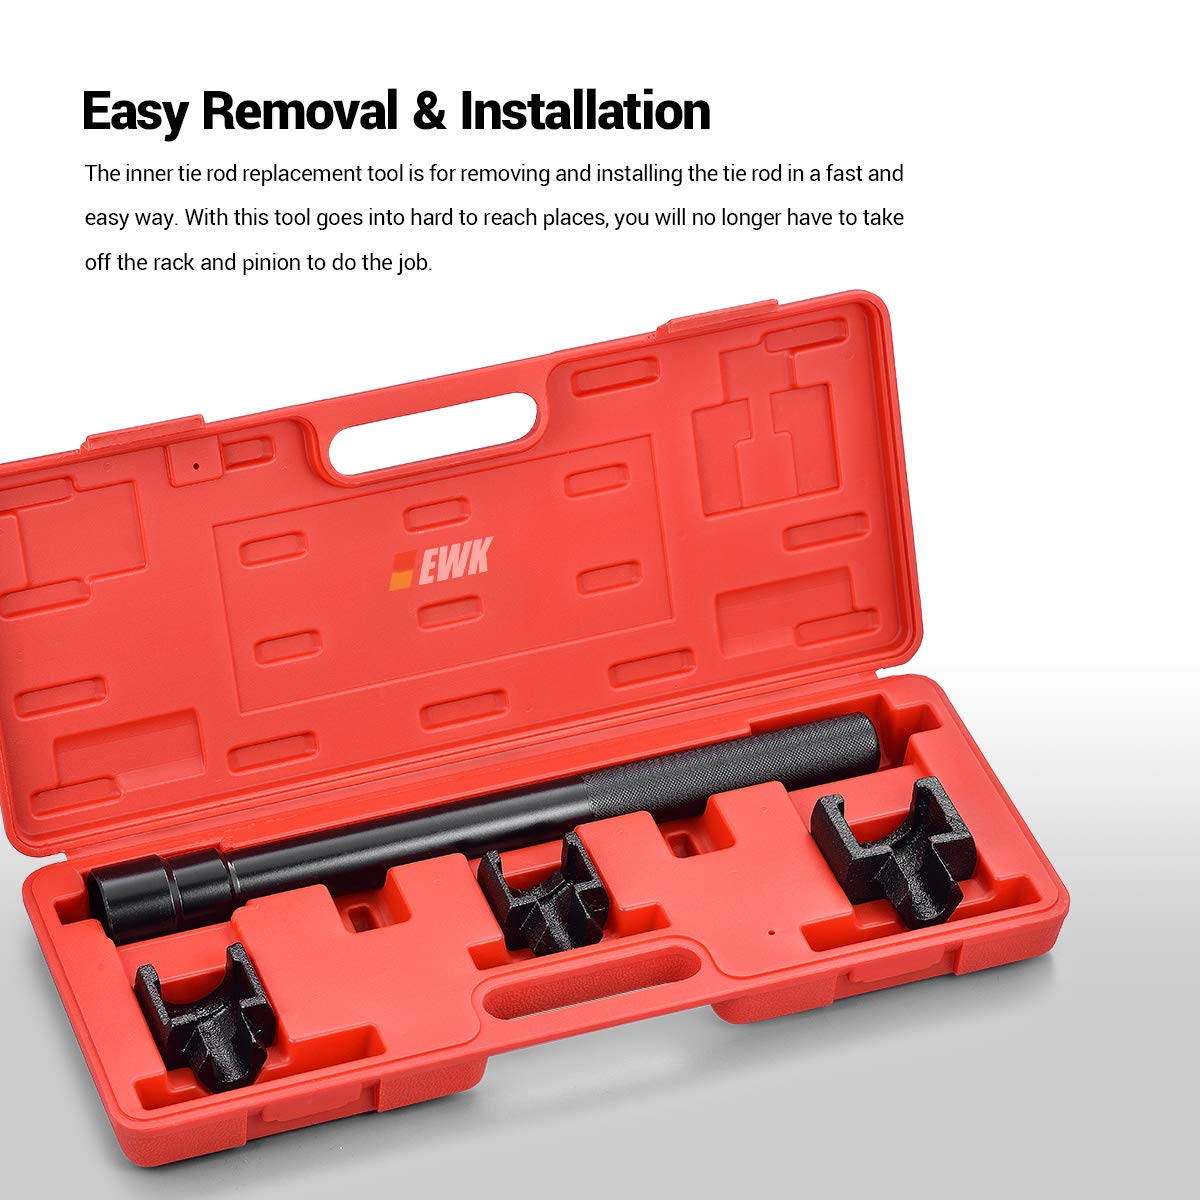 EWK Dual Inner Tie Rod Tool Removal Set with 3 Adapters 1-3/16'' 1-5/16'' 1-7/16'' for Ford Chrysler GM by EWK (Image #2)